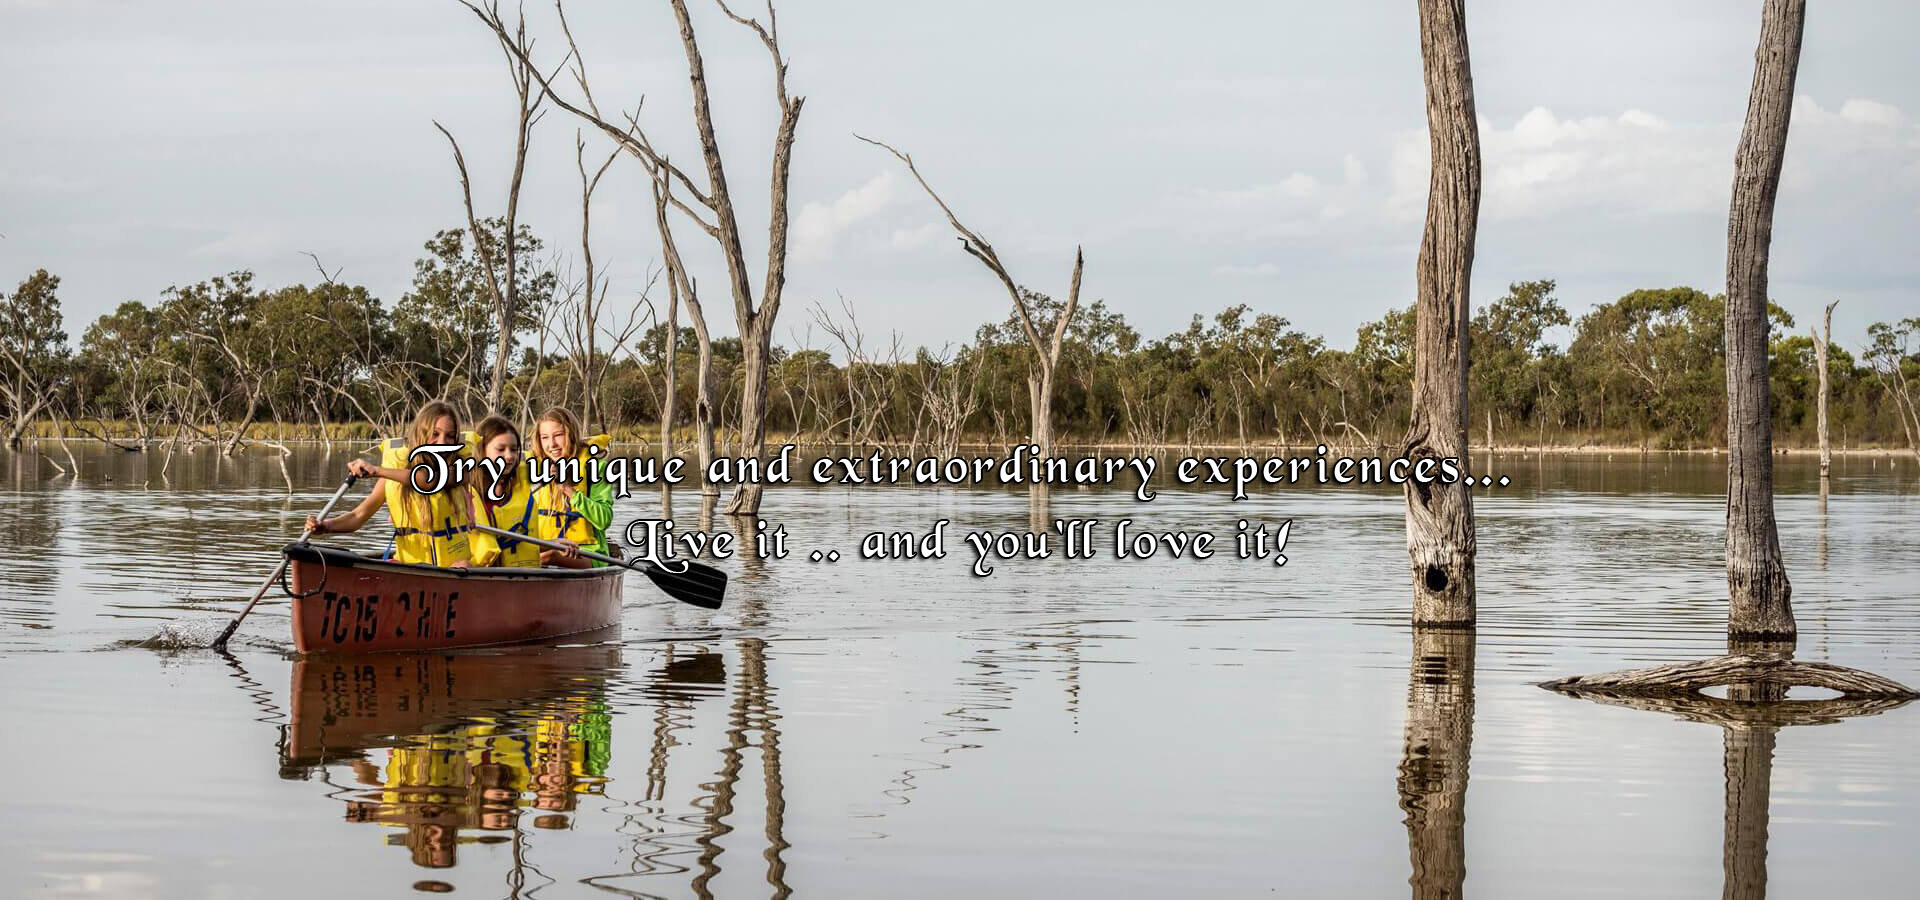 Extraordinary experiences at Boshack Outback